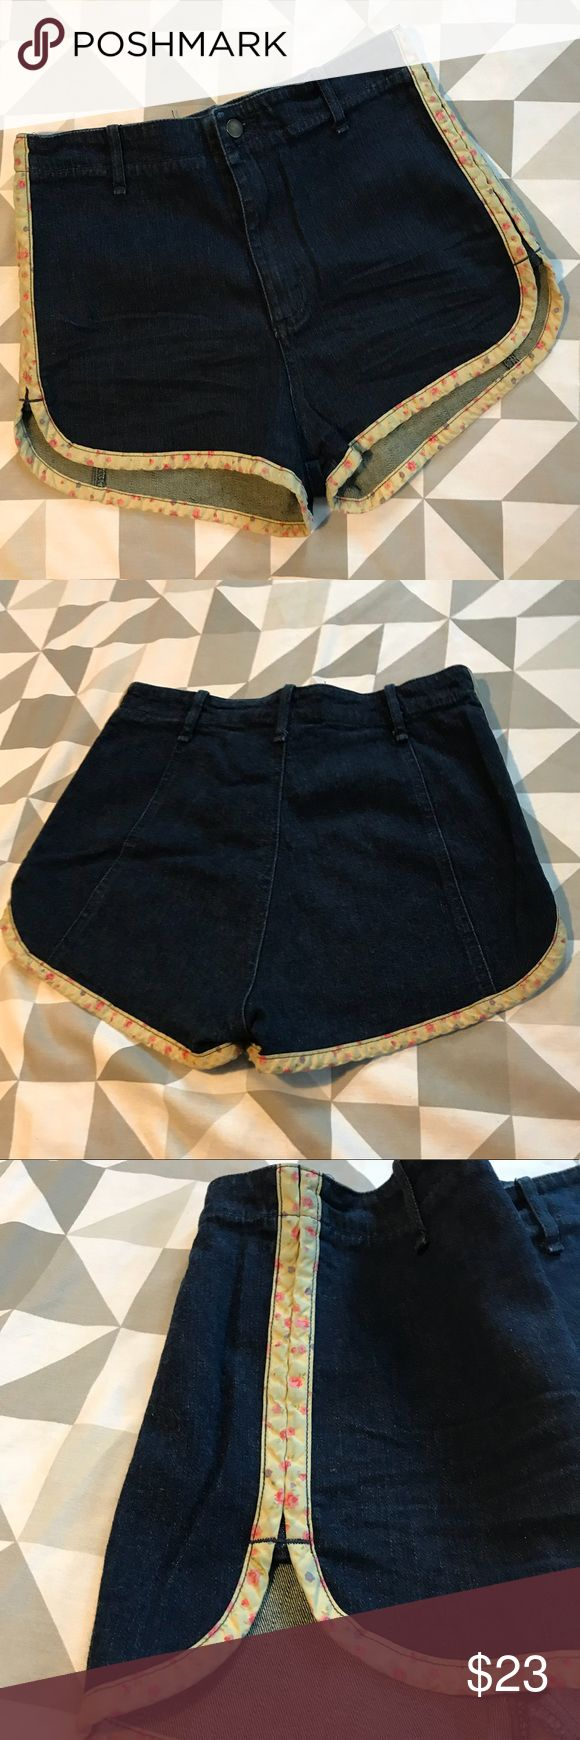 EUC UO Grey Antics Daisy Dukes Daisy Duke shorts hot pants in dark denim with pastel floral stripes down the sides. Size 28. Urban Outfitters Shorts Jean Shorts